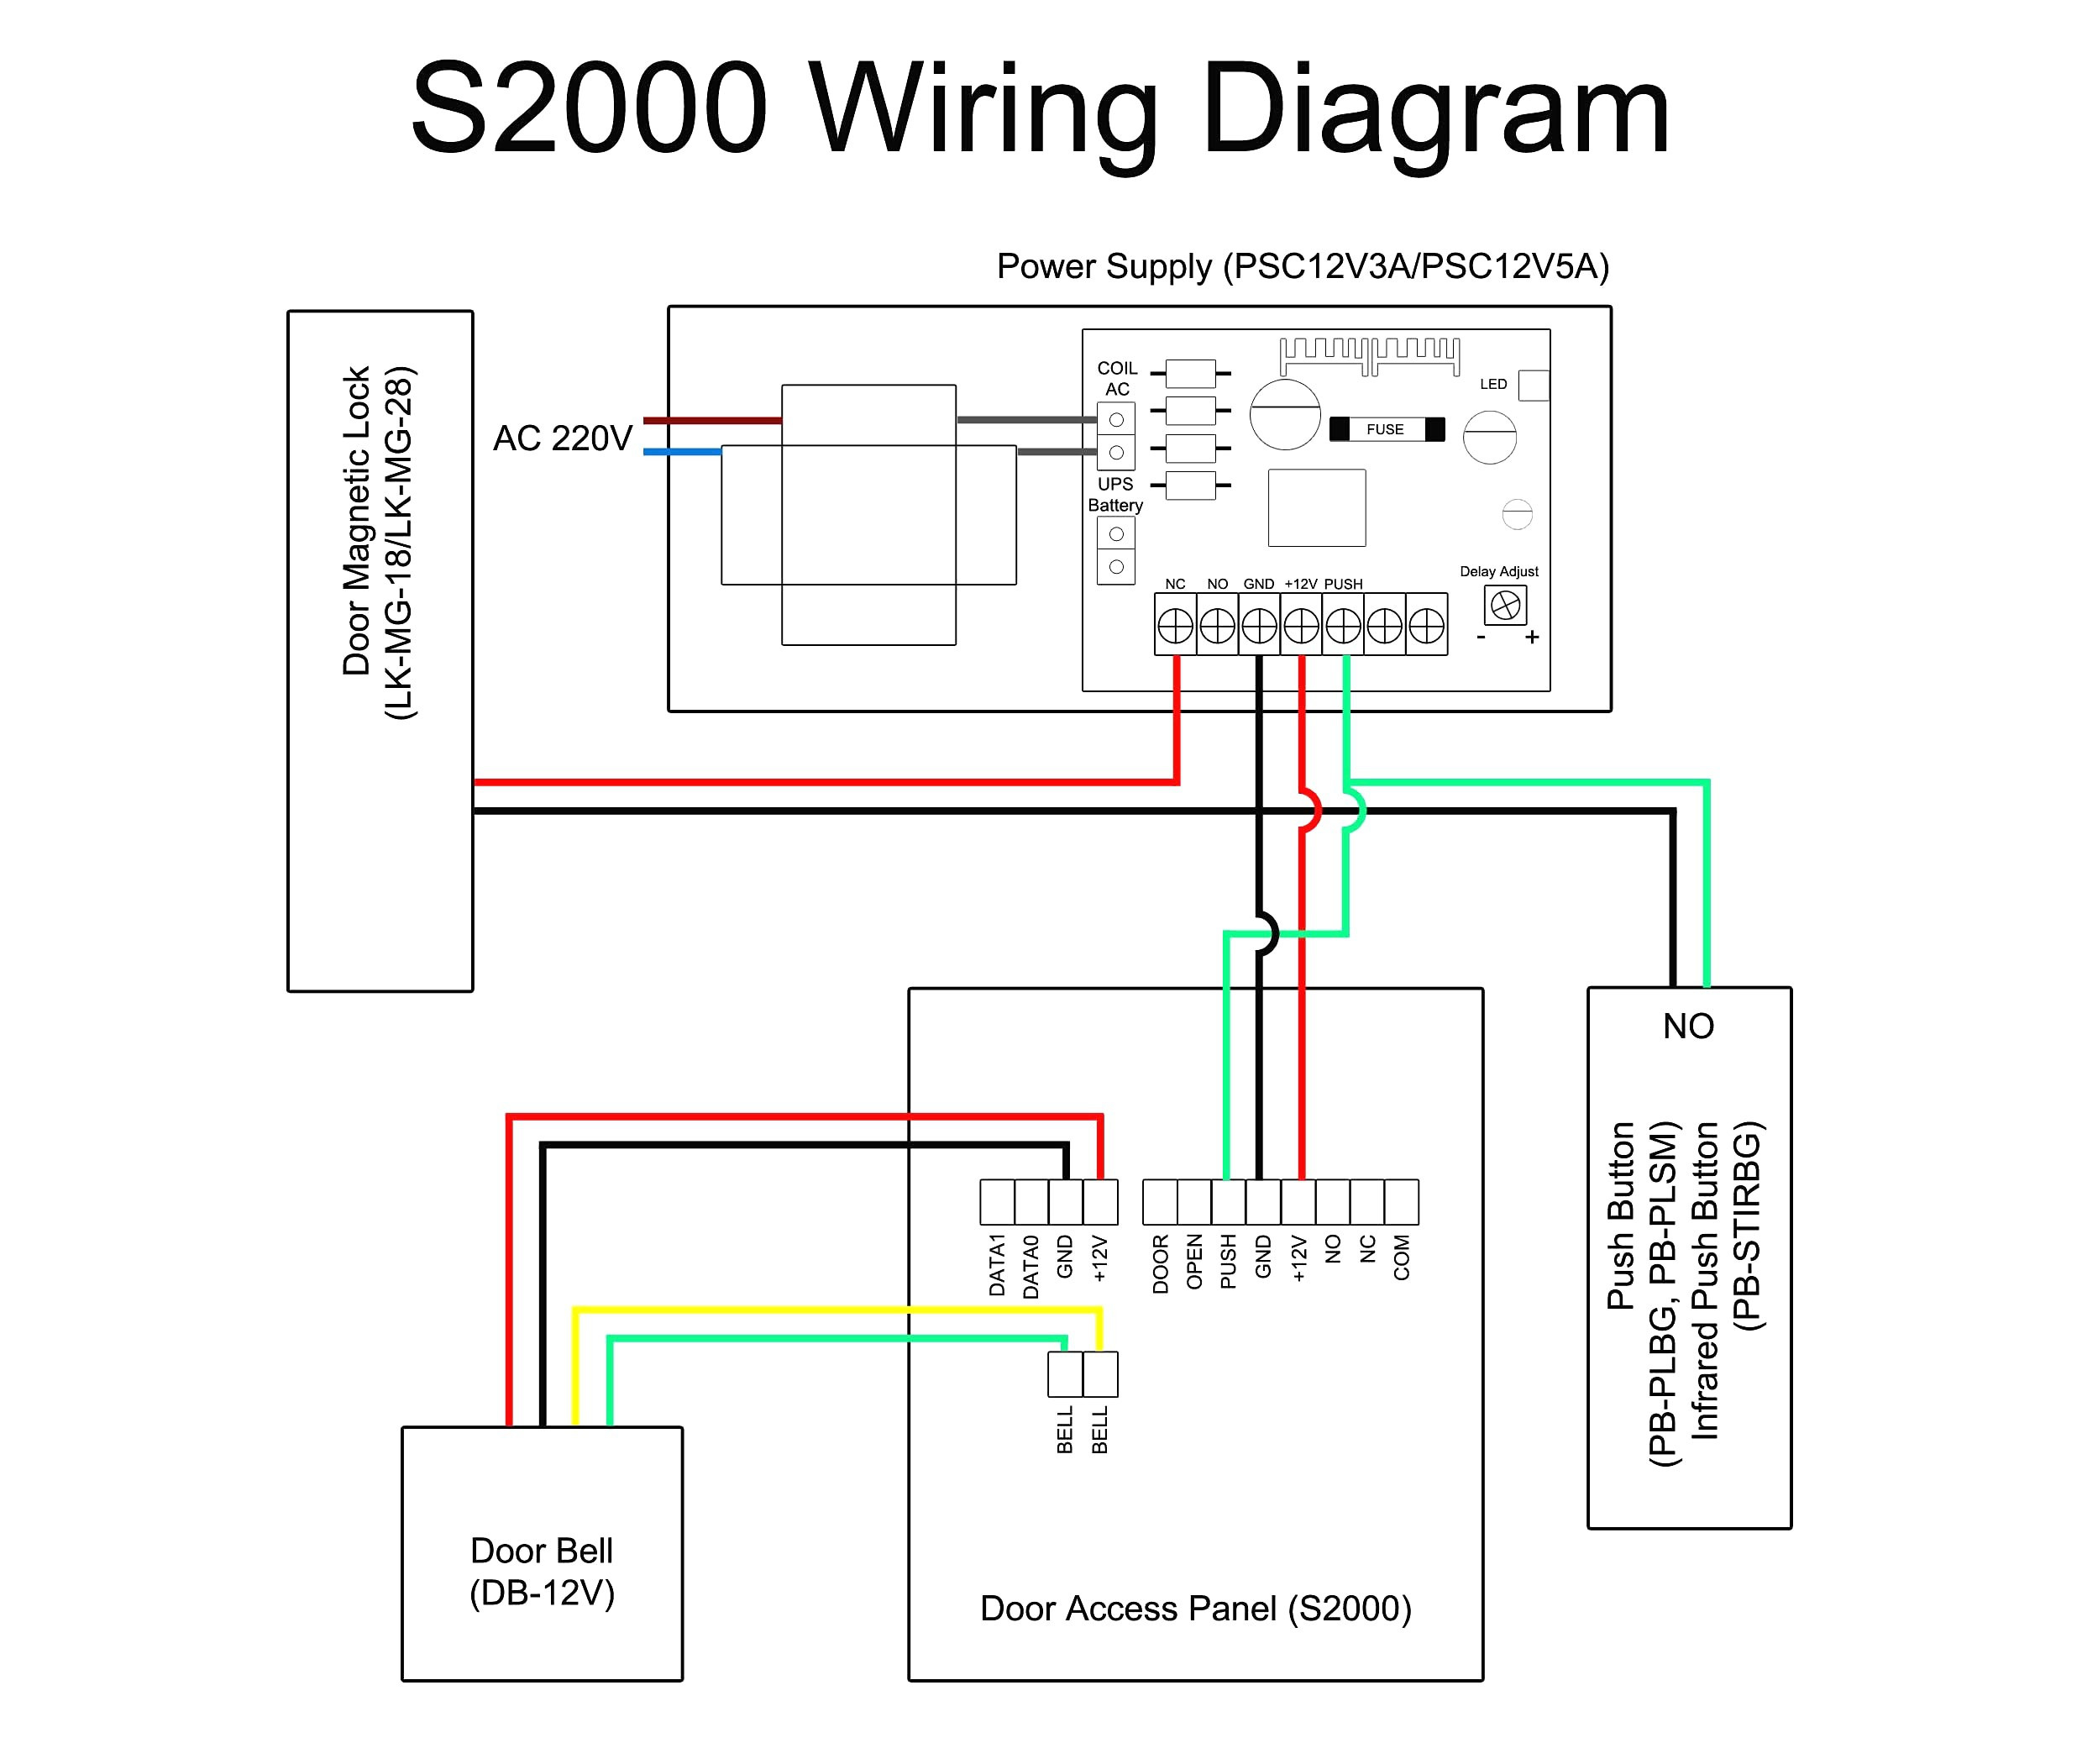 cmos camera wiring diagram Download-Wiring Diagram For Home Alarm New Ccd Camera Circuit Diagram Beautiful Cmos Camera Wiring Diagram Free 1-s